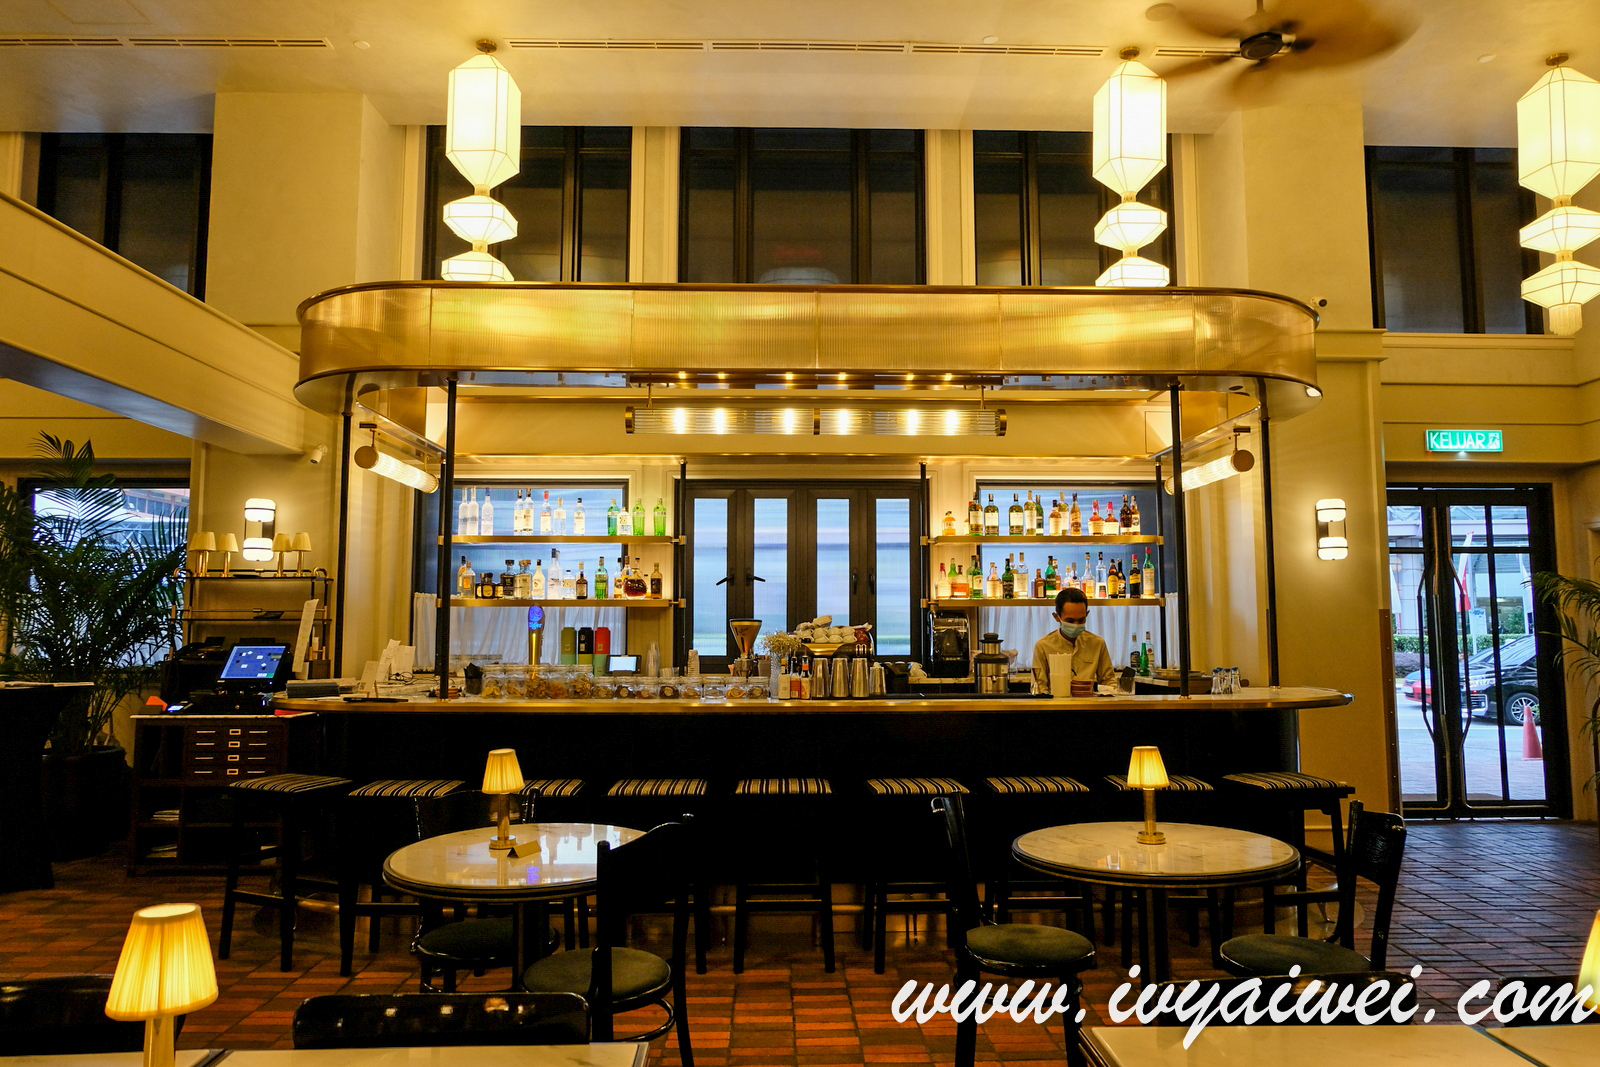 Stay & Dine Experience @ The Chow Kit, KL